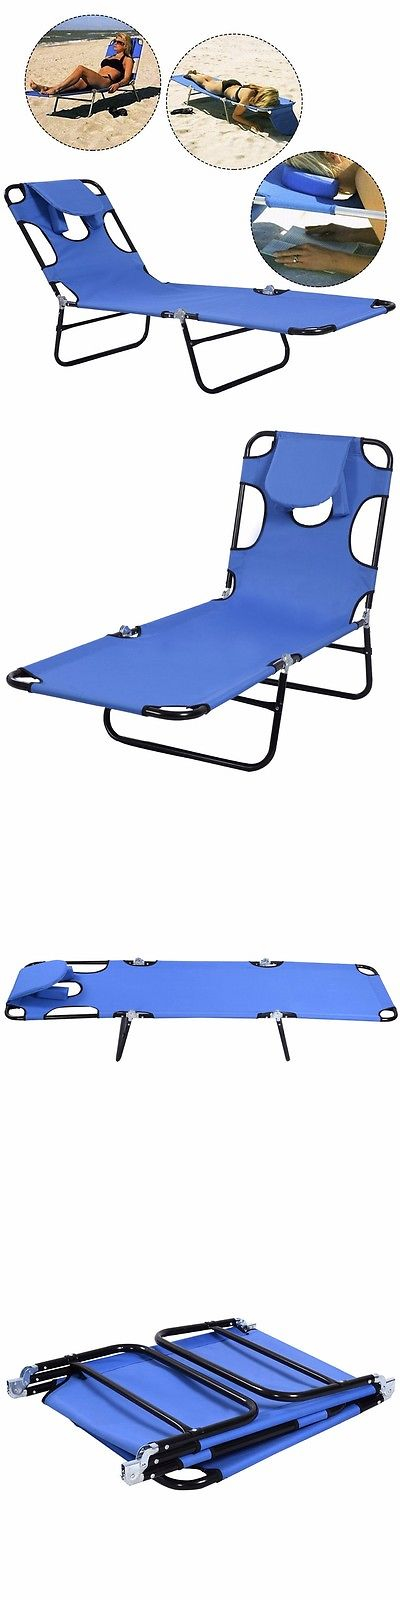 Cots 87099: Camping Bed Outdoor Cot Folding Sleeping Hiking Portable Military Sun Lounger BUY IT NOW ONLY: $37.5